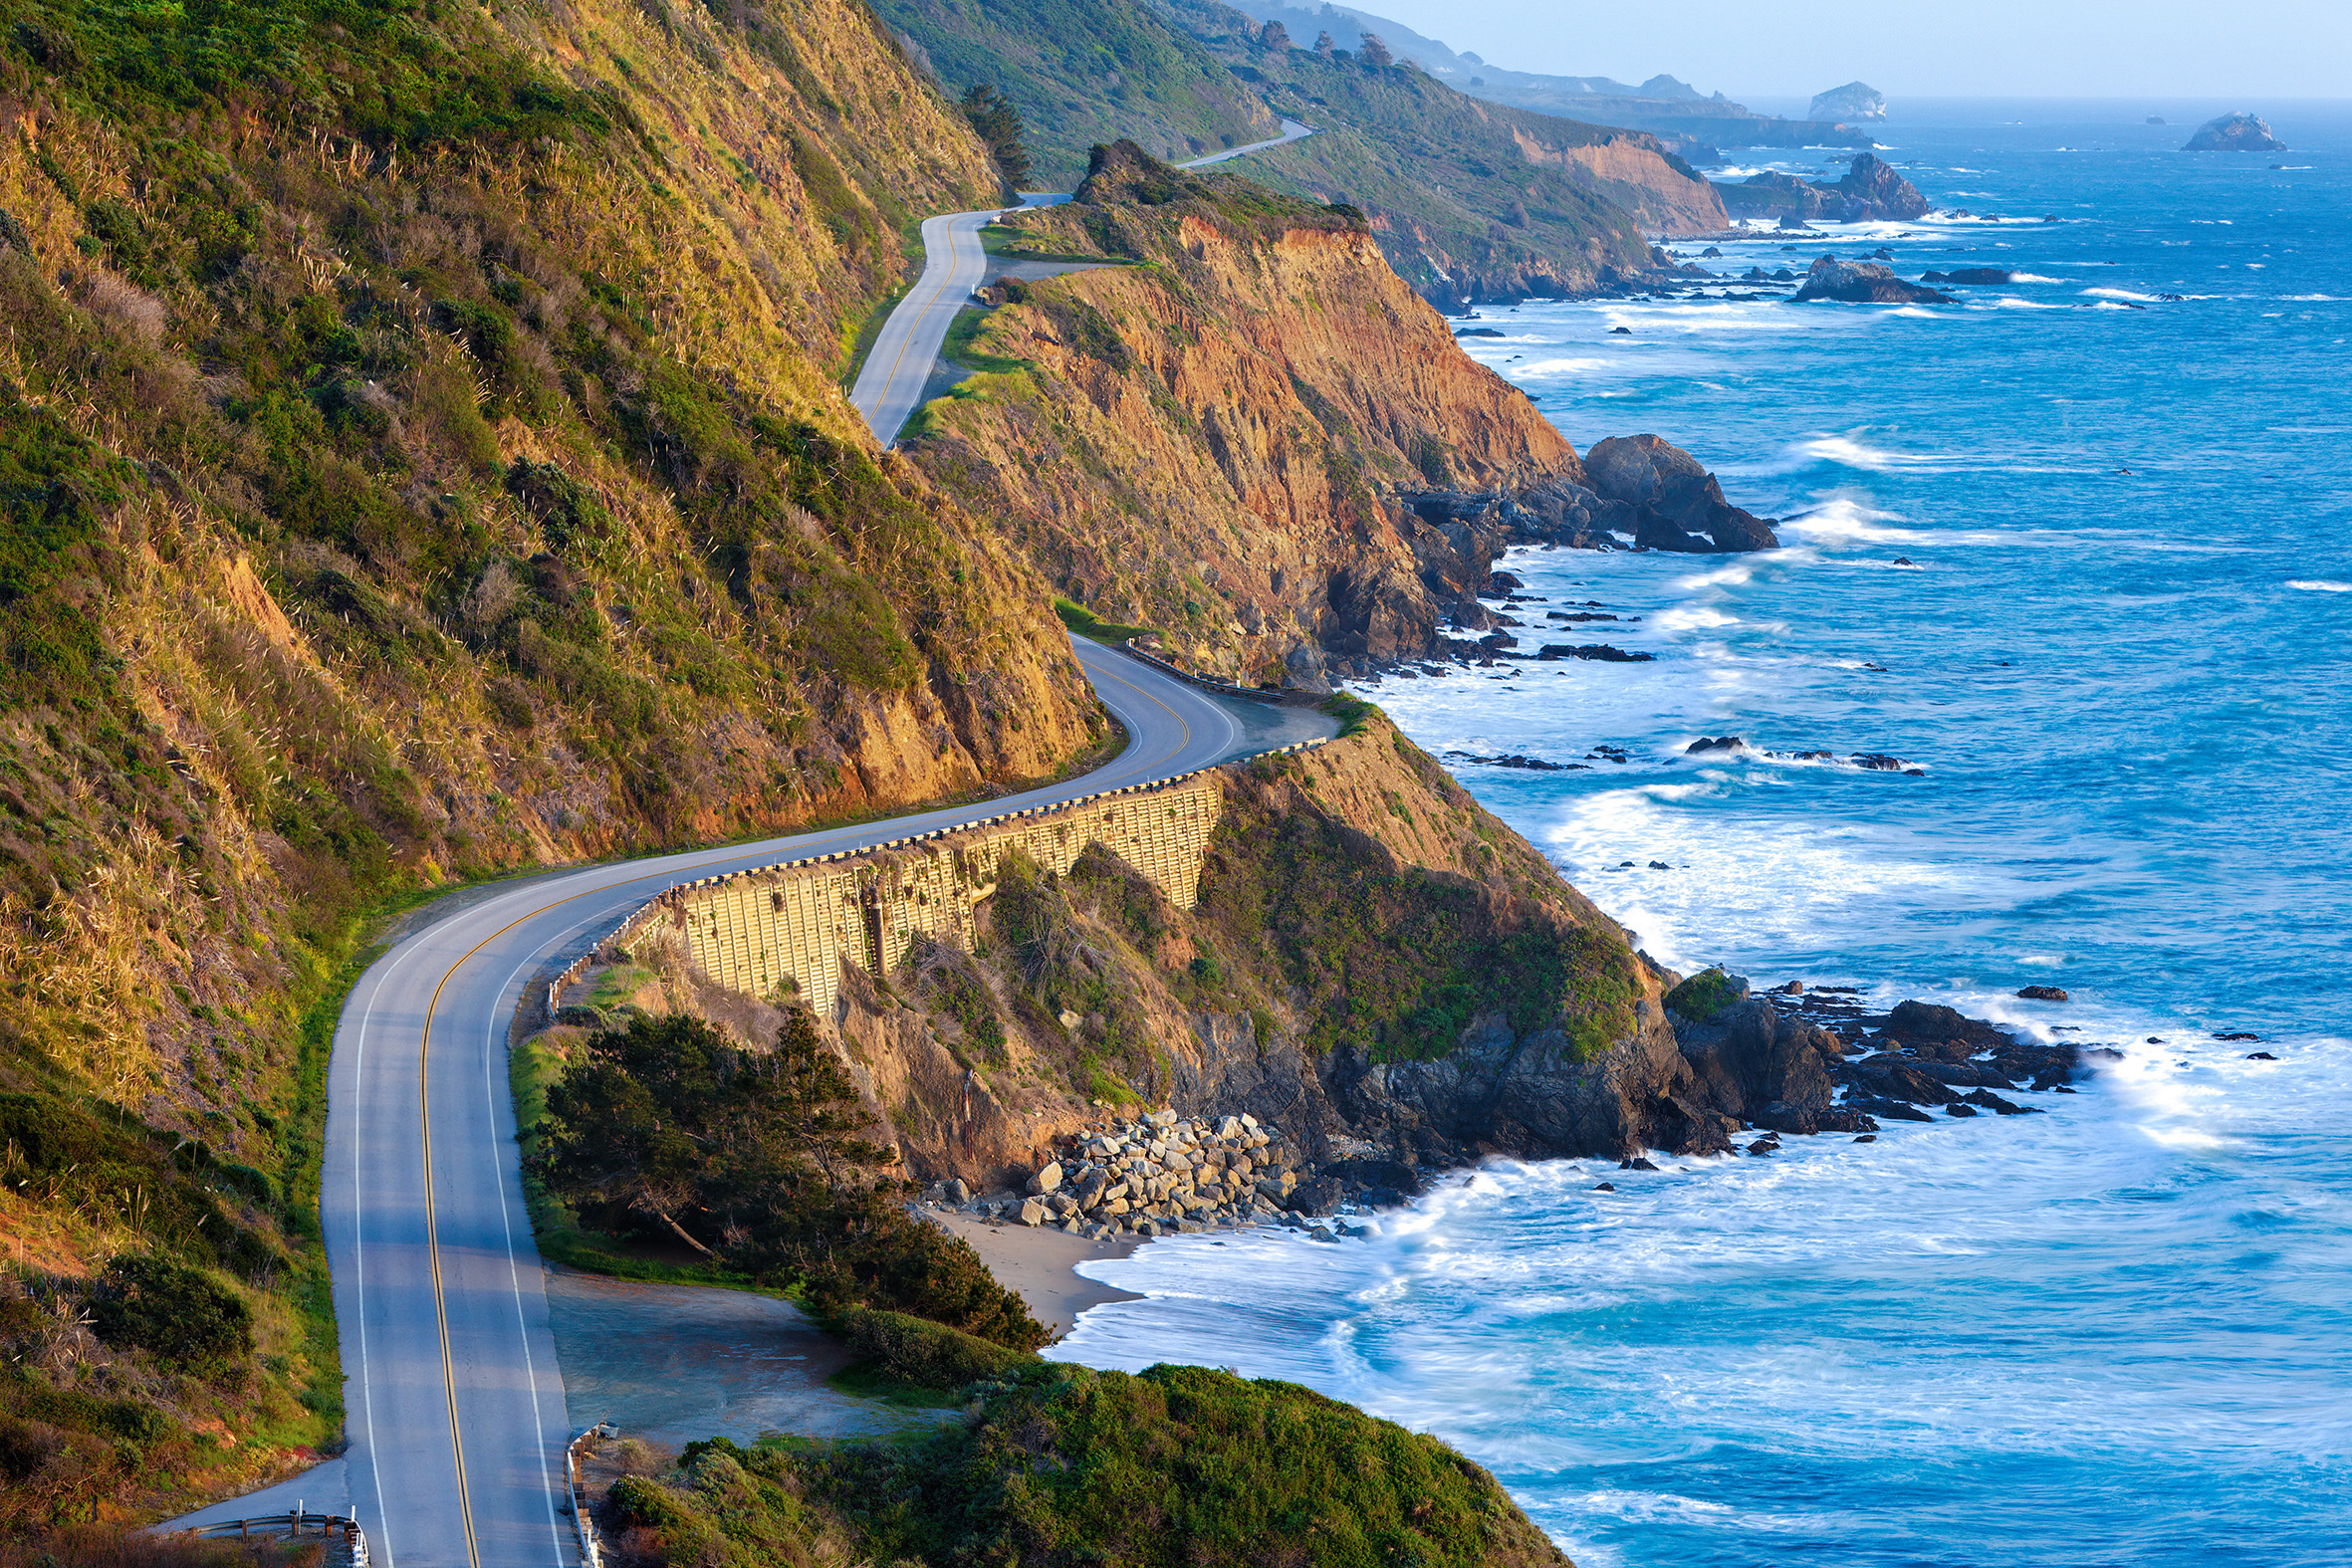 Winding road along the edge of cliffs justting out into the sea on the Pacific Coast Highway